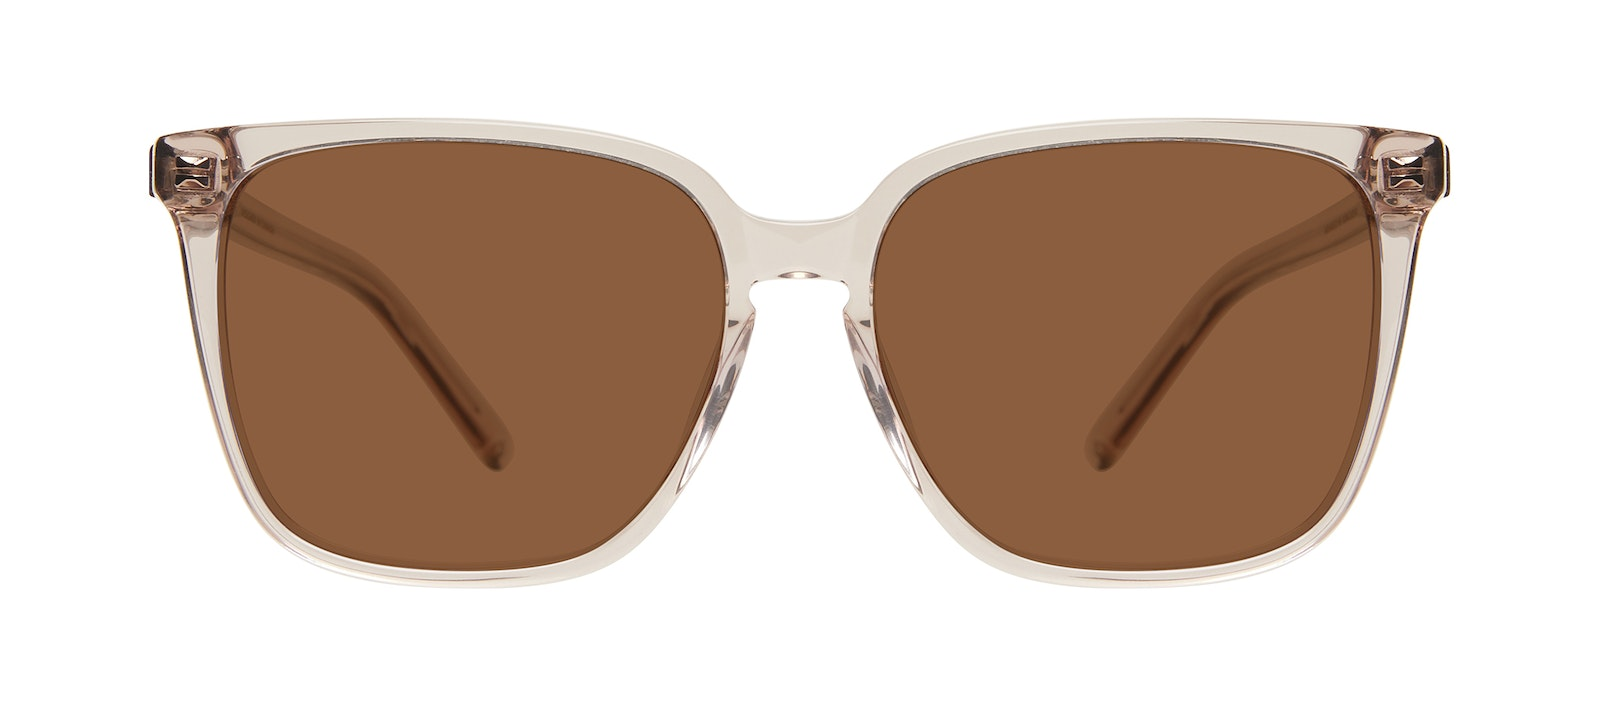 Affordable Fashion Glasses Square Sunglasses Women Runway Sand Front